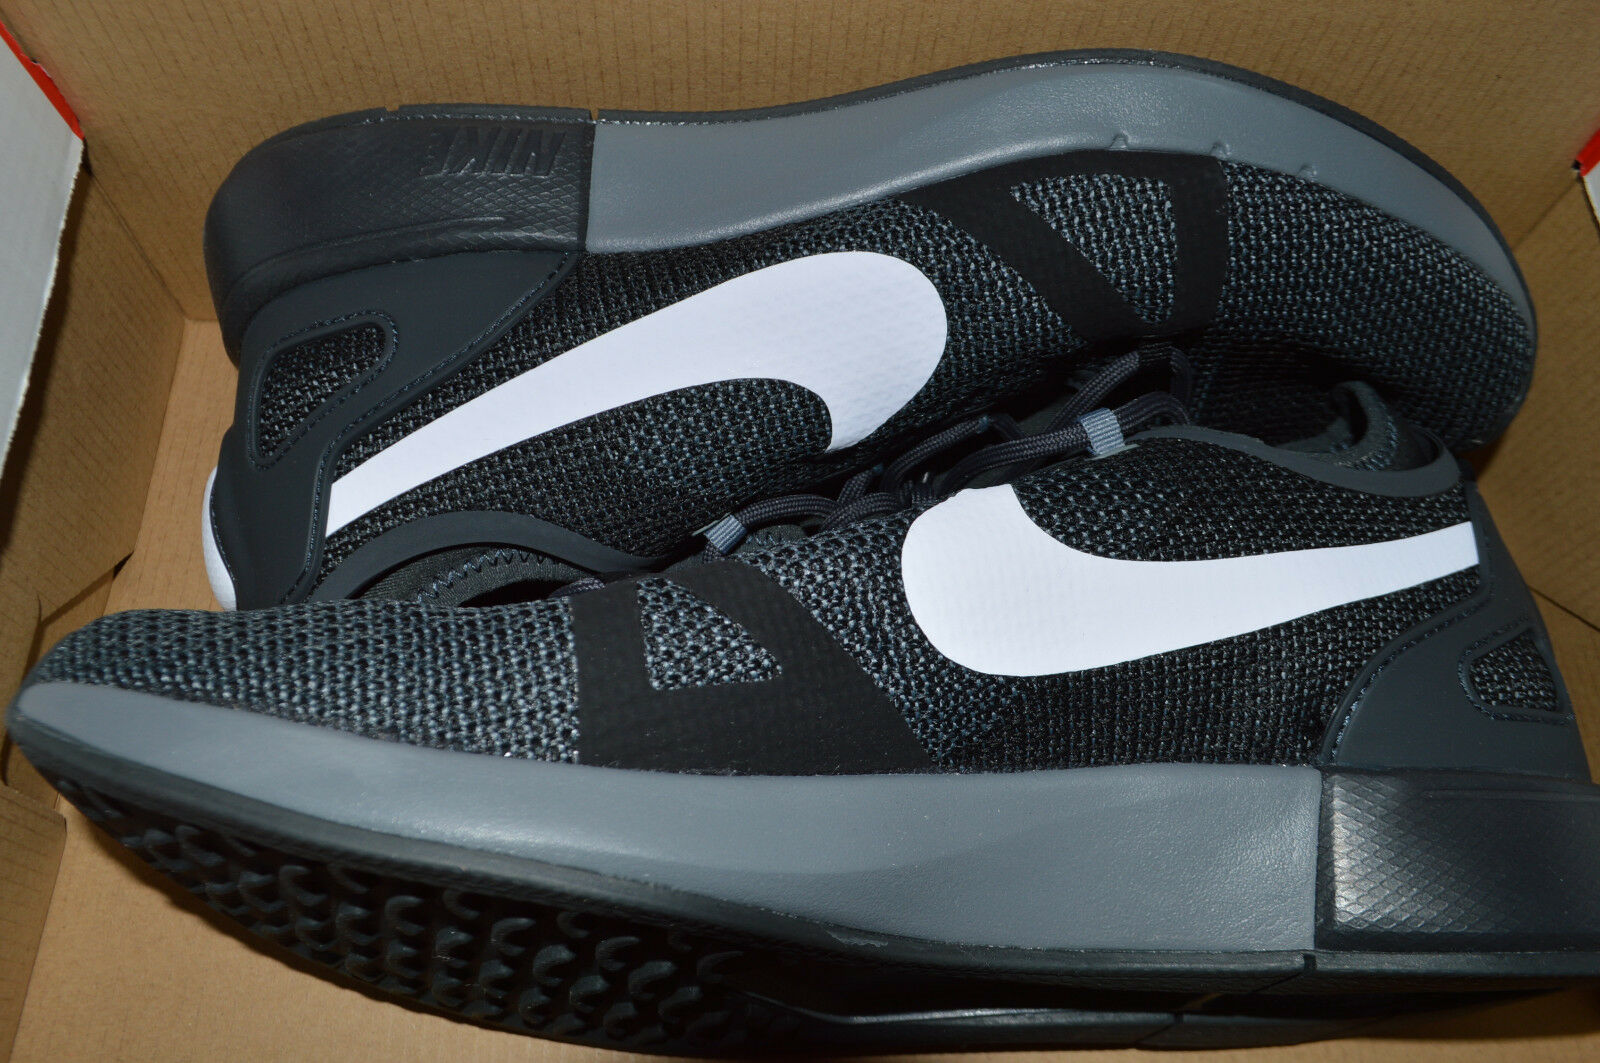 New Mens Nike Dual Racer Racer Racer Run Running shoes 918228-007 sz 11 Black Anthracite d96342